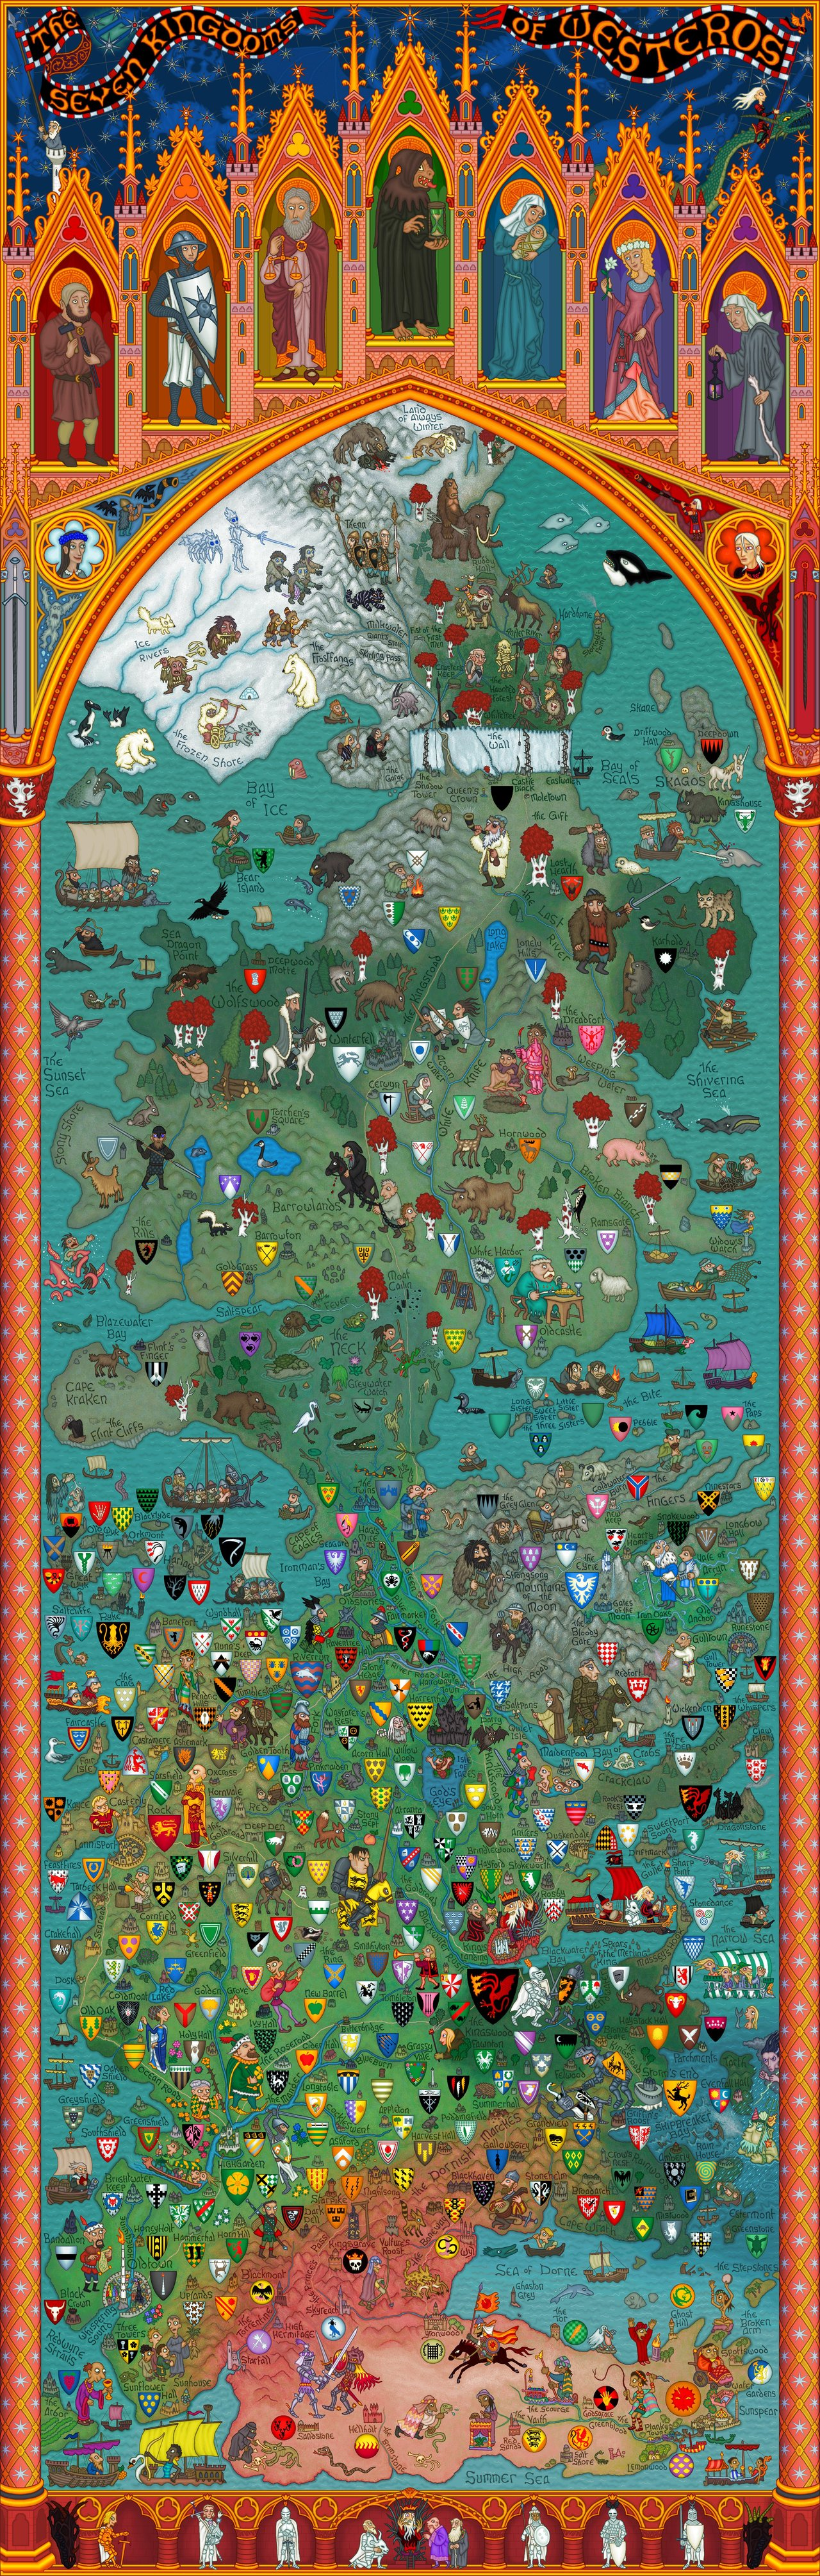 game of thrones westeros map pdf